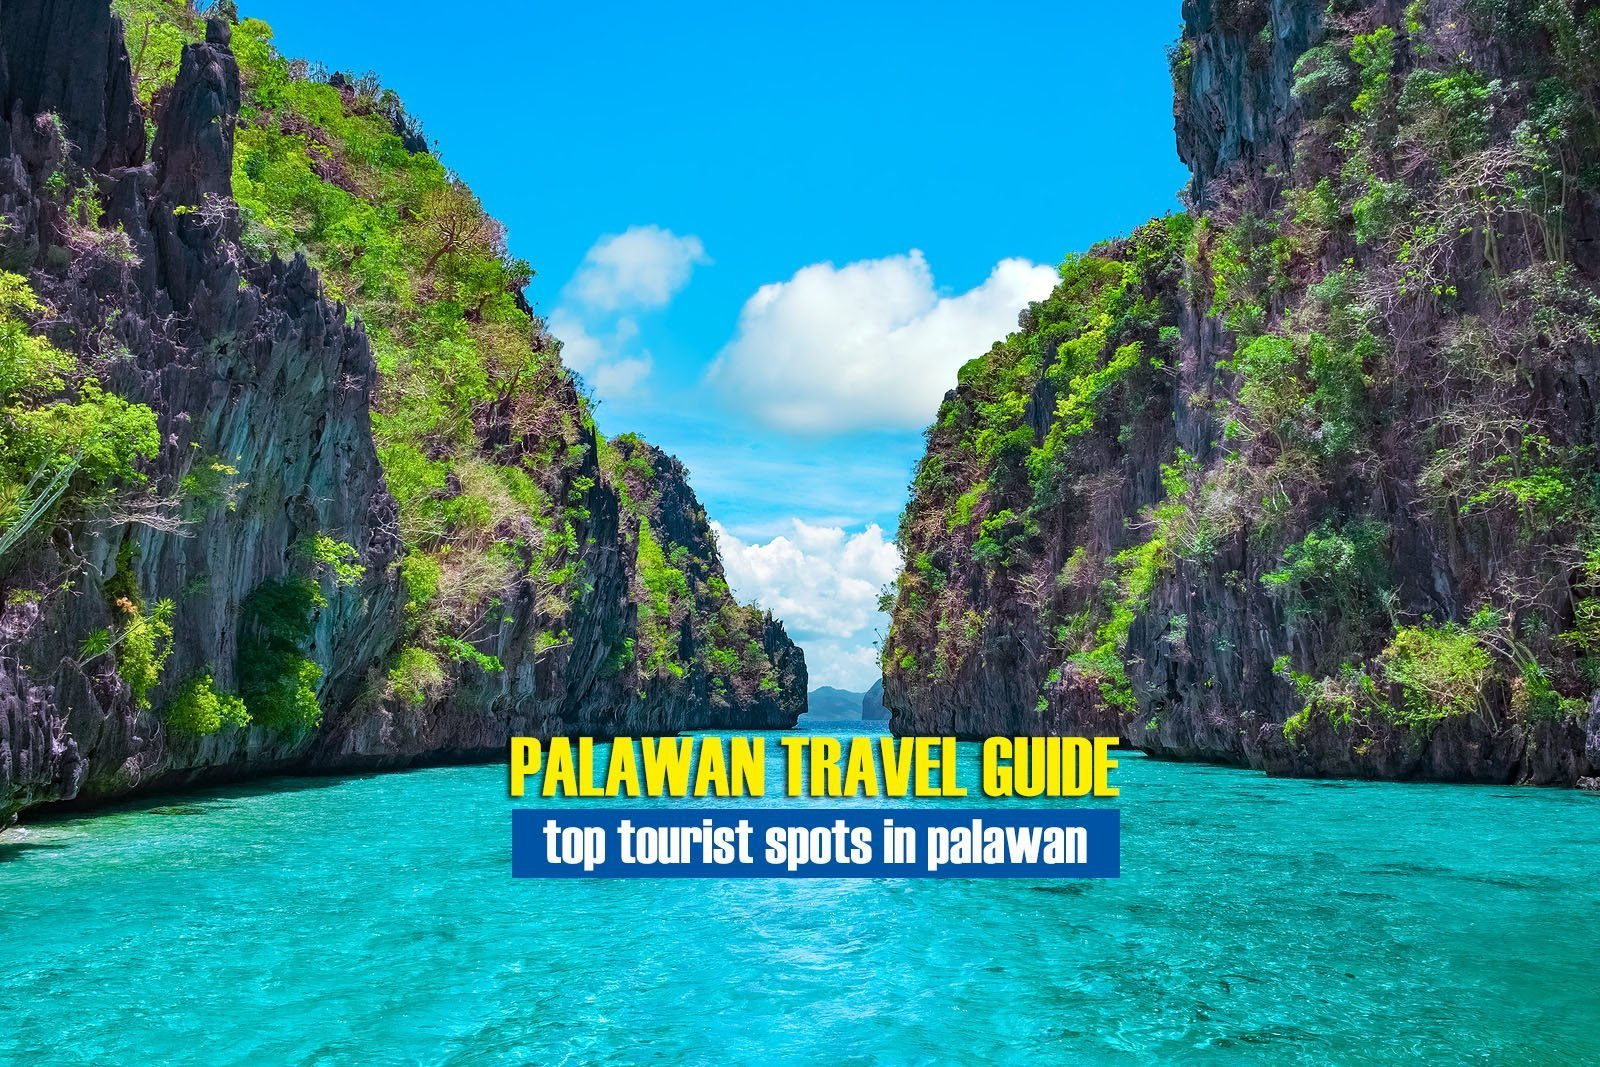 Must-Visit 5 Top Beaches in Palawan